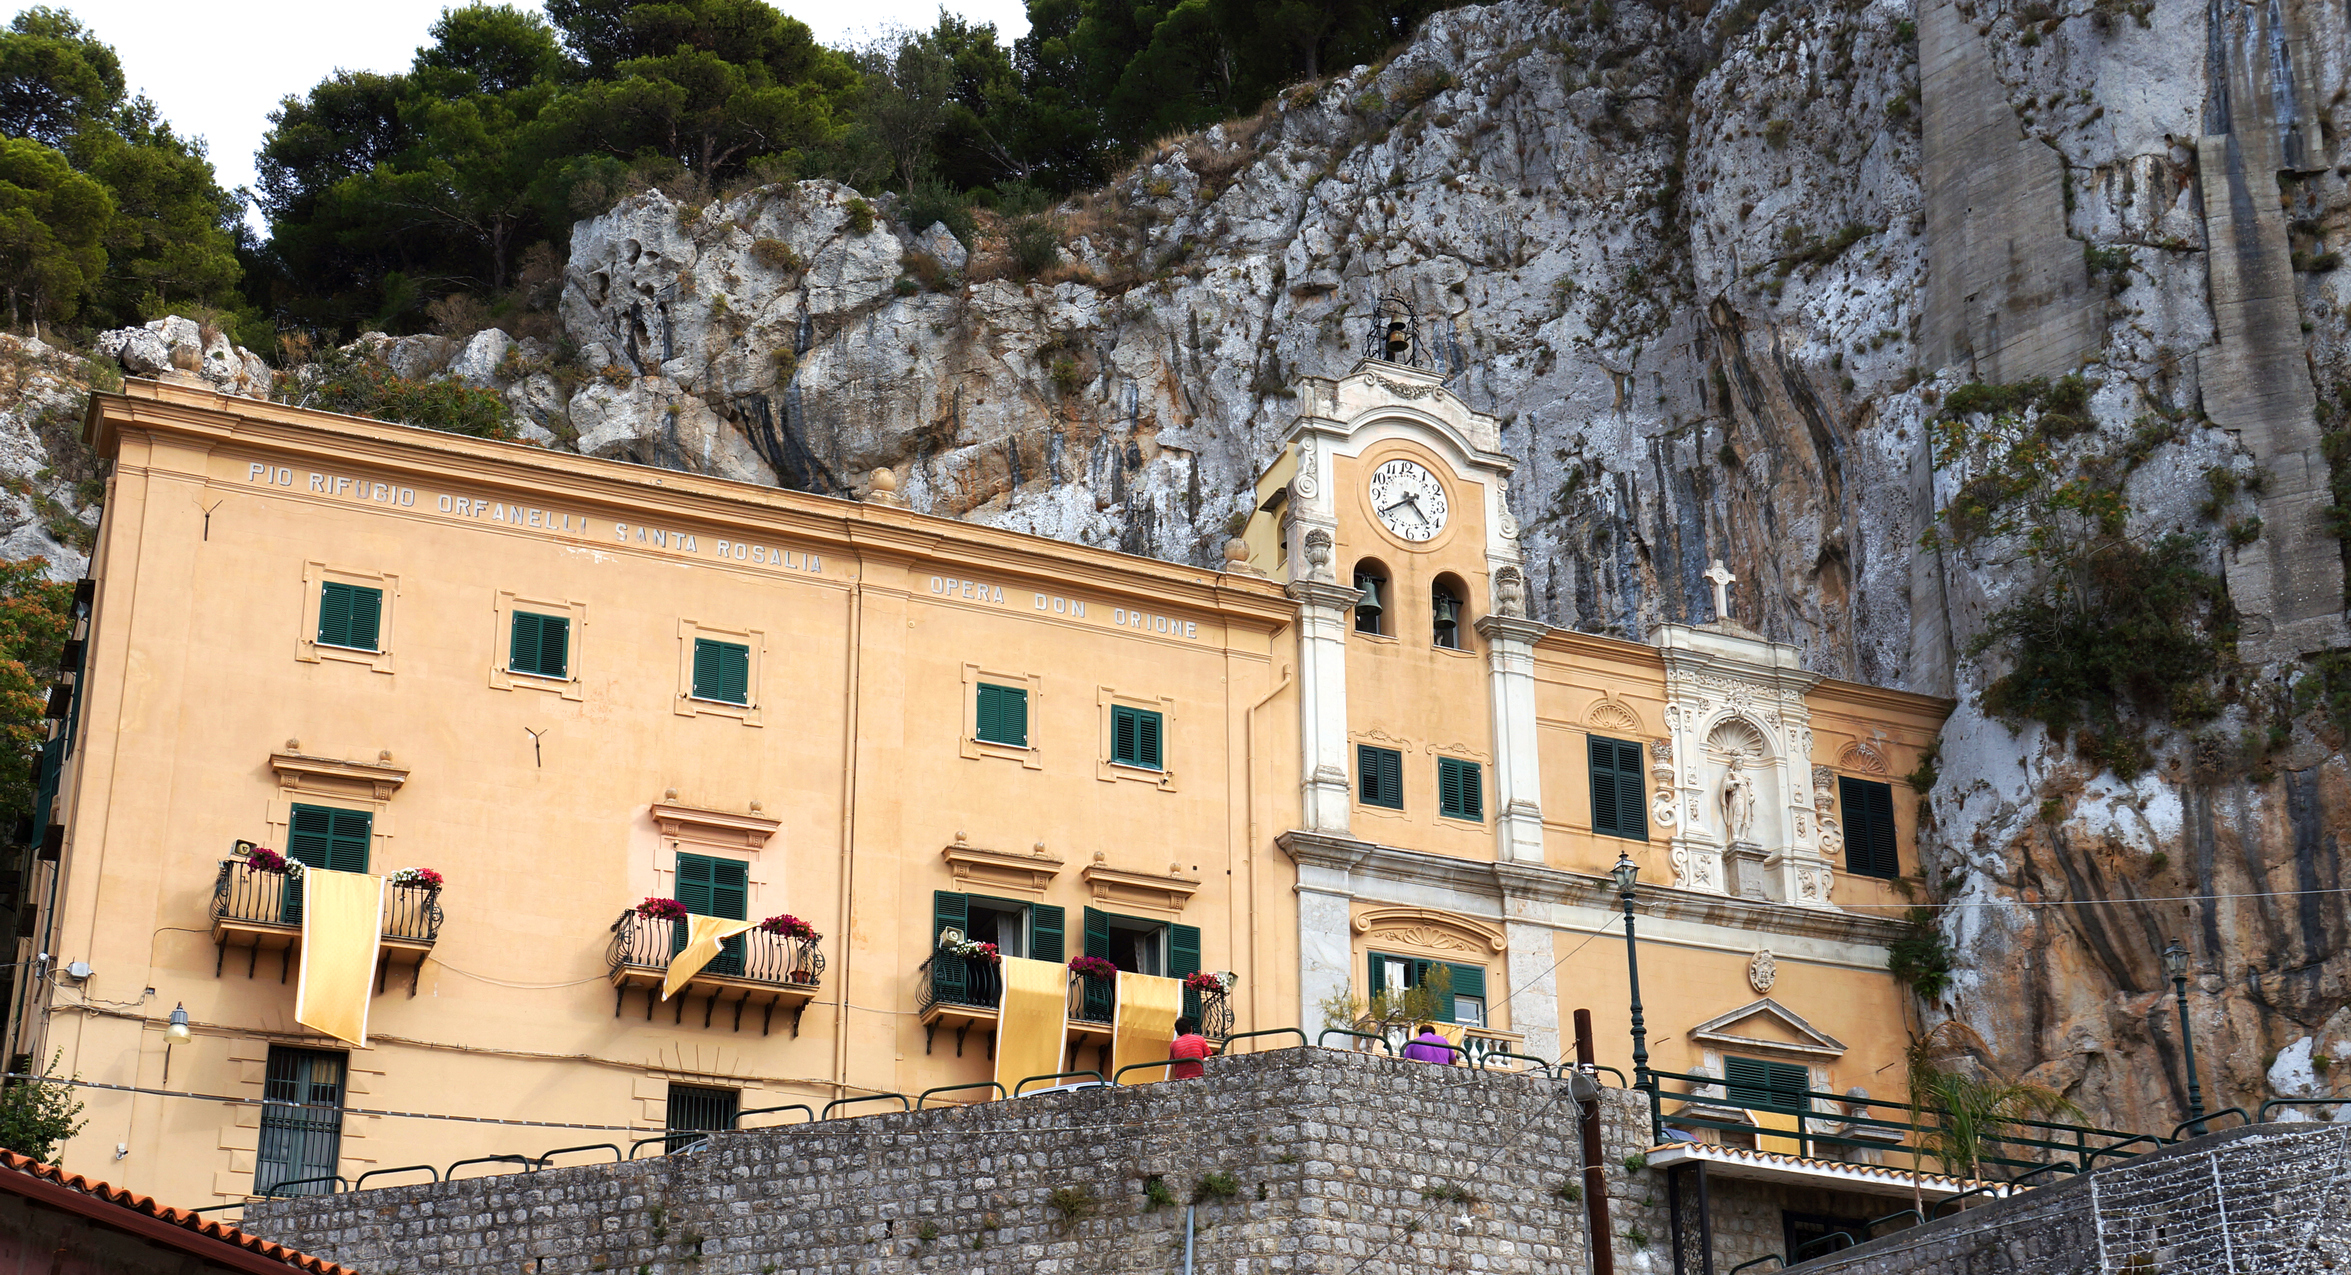 External view of the Saint Rosalia sanctuary in the mount Pellegrino of Palermo in